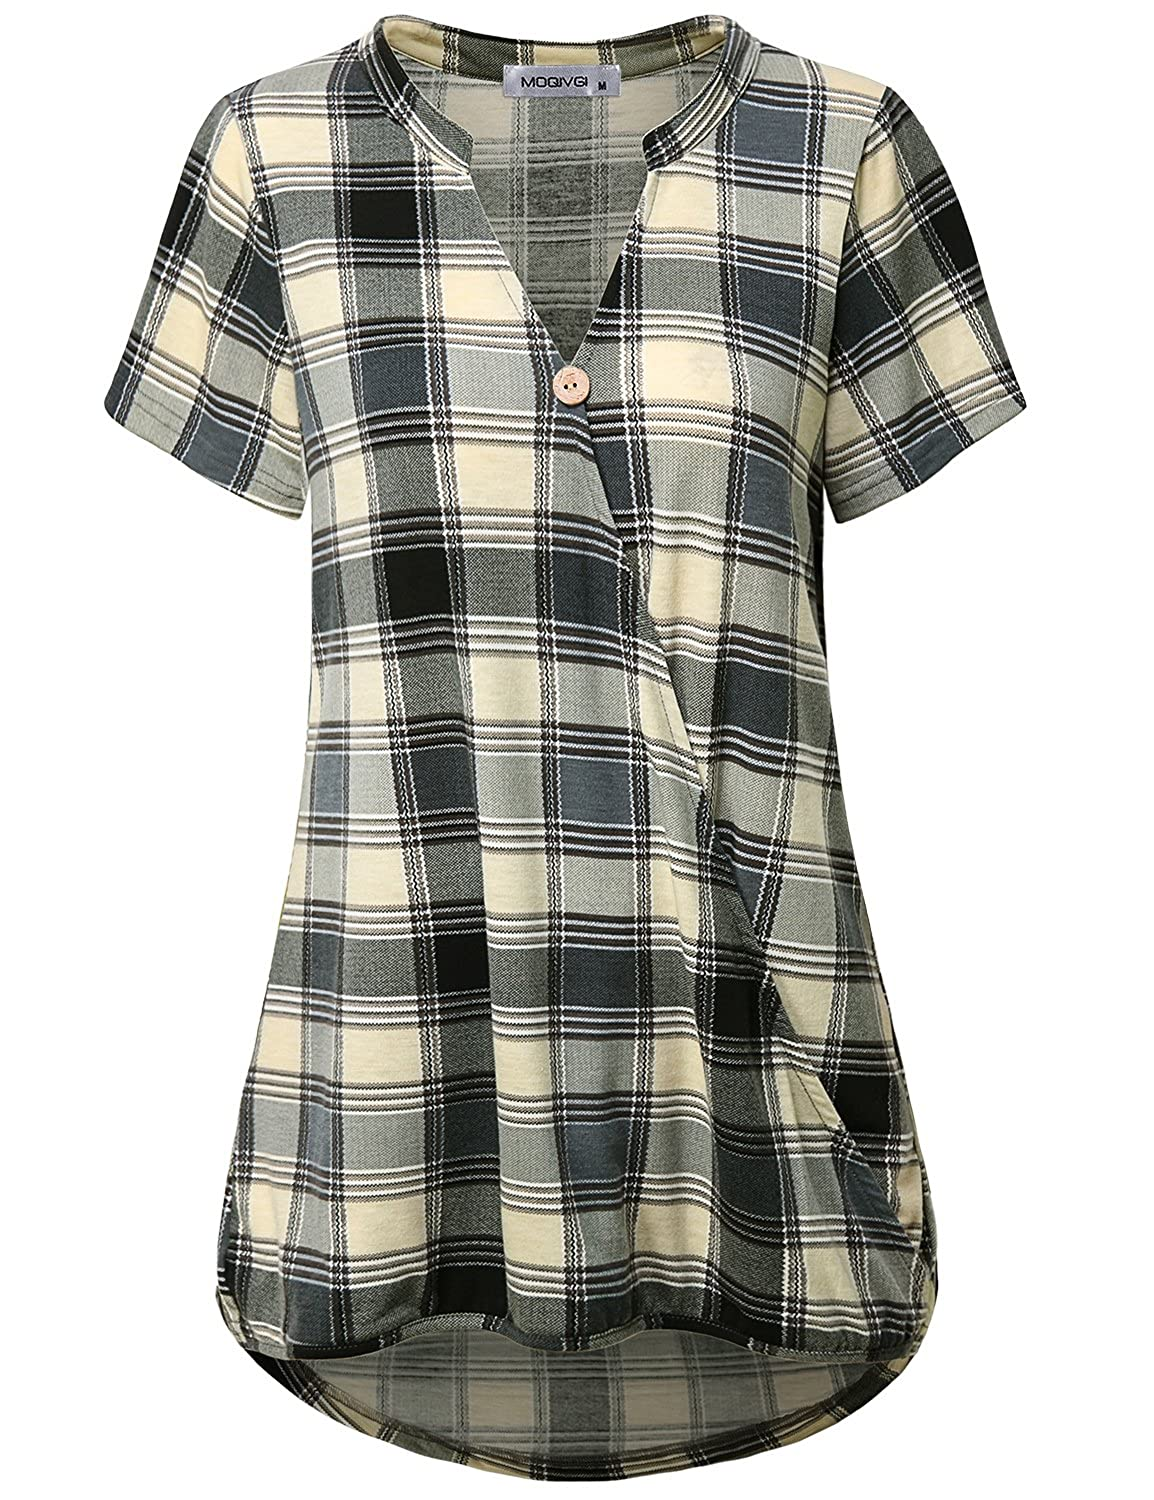 0a4363d5c26 (=^ ^=)Plaid Shirt--Classic Tartan always in fashion,easy to dress up or  dress down.Perfect for any occasion.